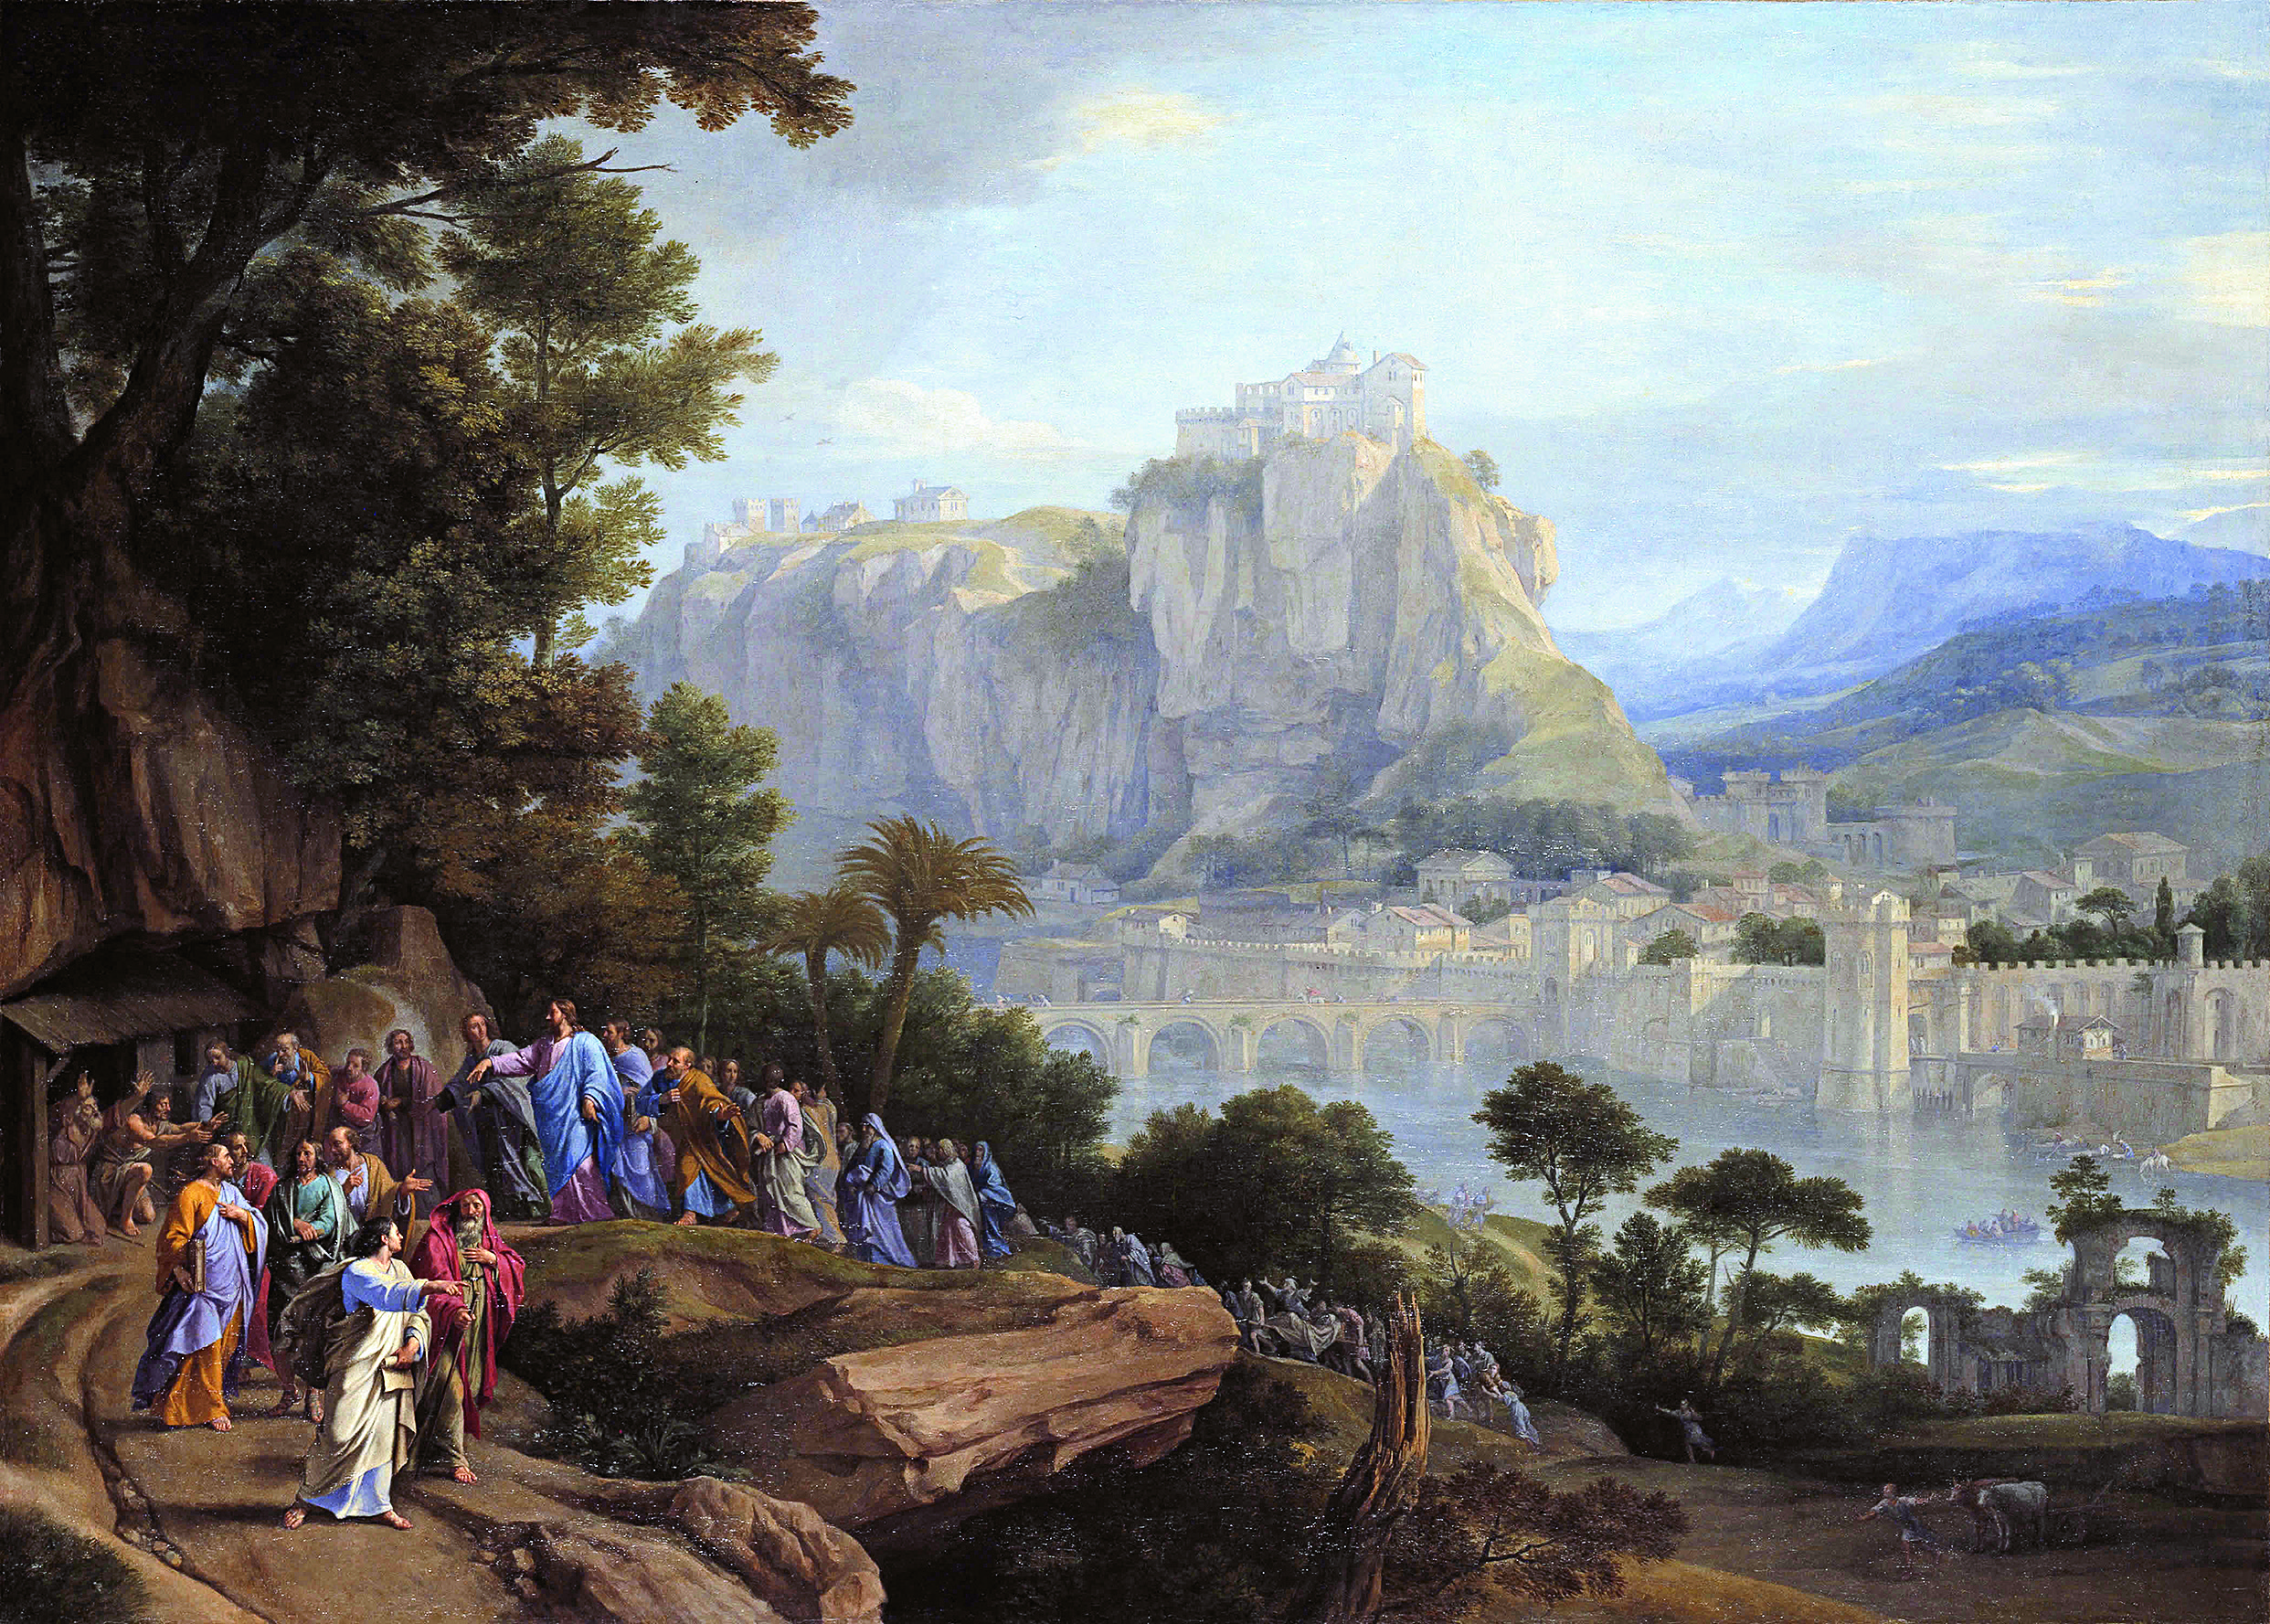 Christ Healing the Blind, painted ca. 1657. Dawn L. Hollis observes: The image depicts the healing of two blind men recounted in Matthew 20:29-34. Their first sight will be of the mountainous vista that dominates the canvas. [Image] Philippe de Champaigne